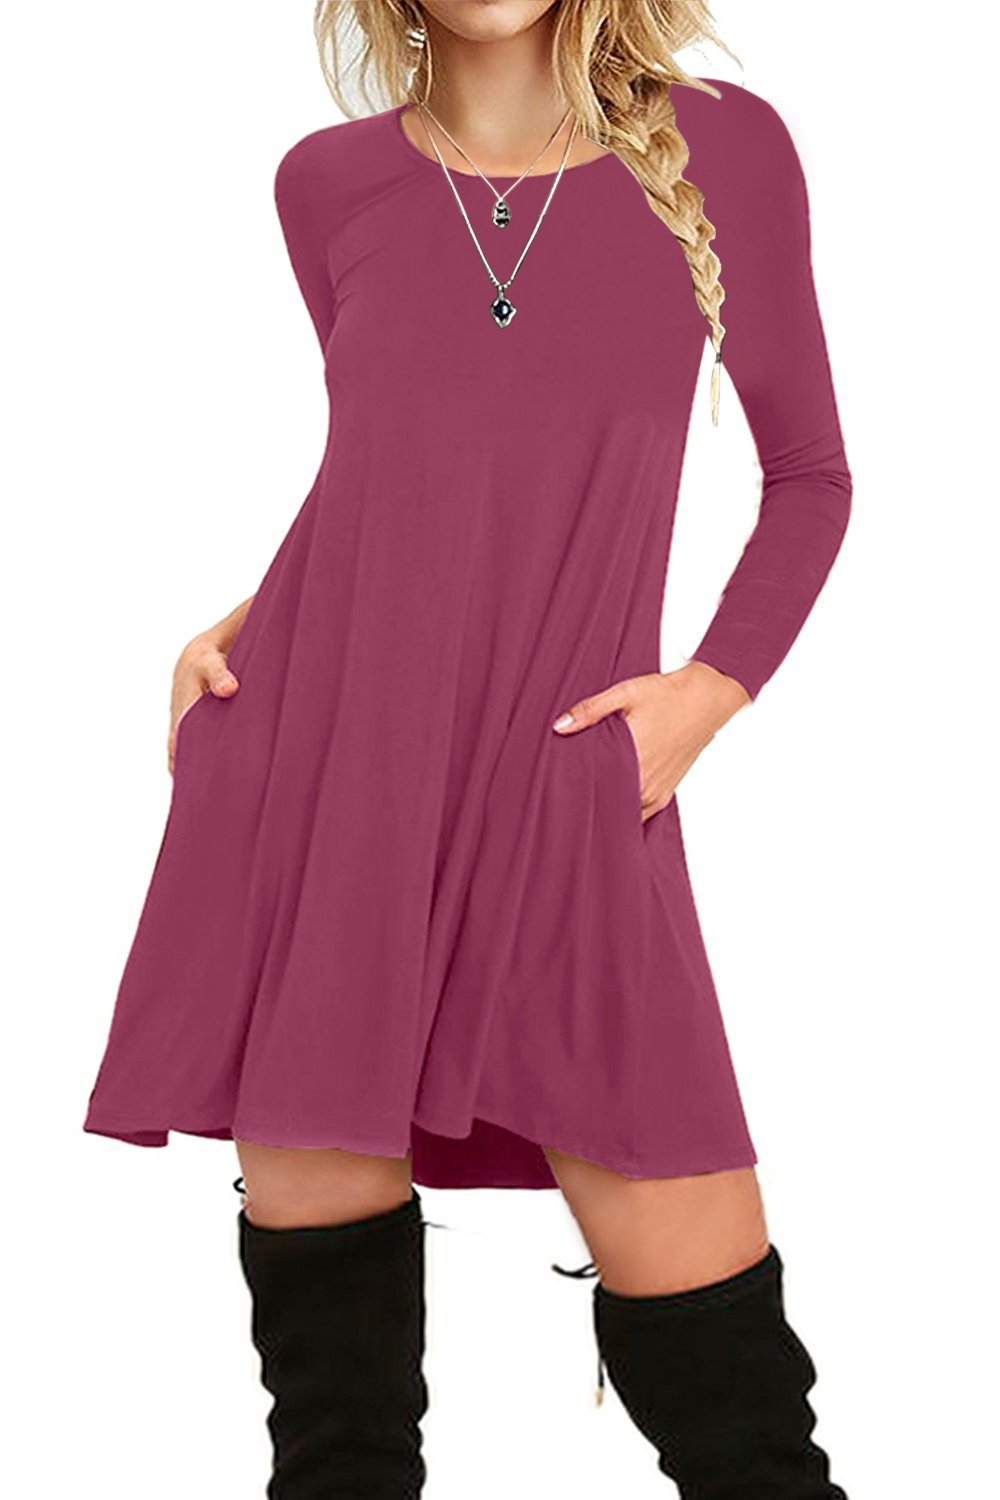 I2CRAZY Women's Long Sleeve Pockets Casual Plain T-Shirt Loose Dresses(11-Long Sleeve-Mauve,XL) by I2CRAZY (Image #1)